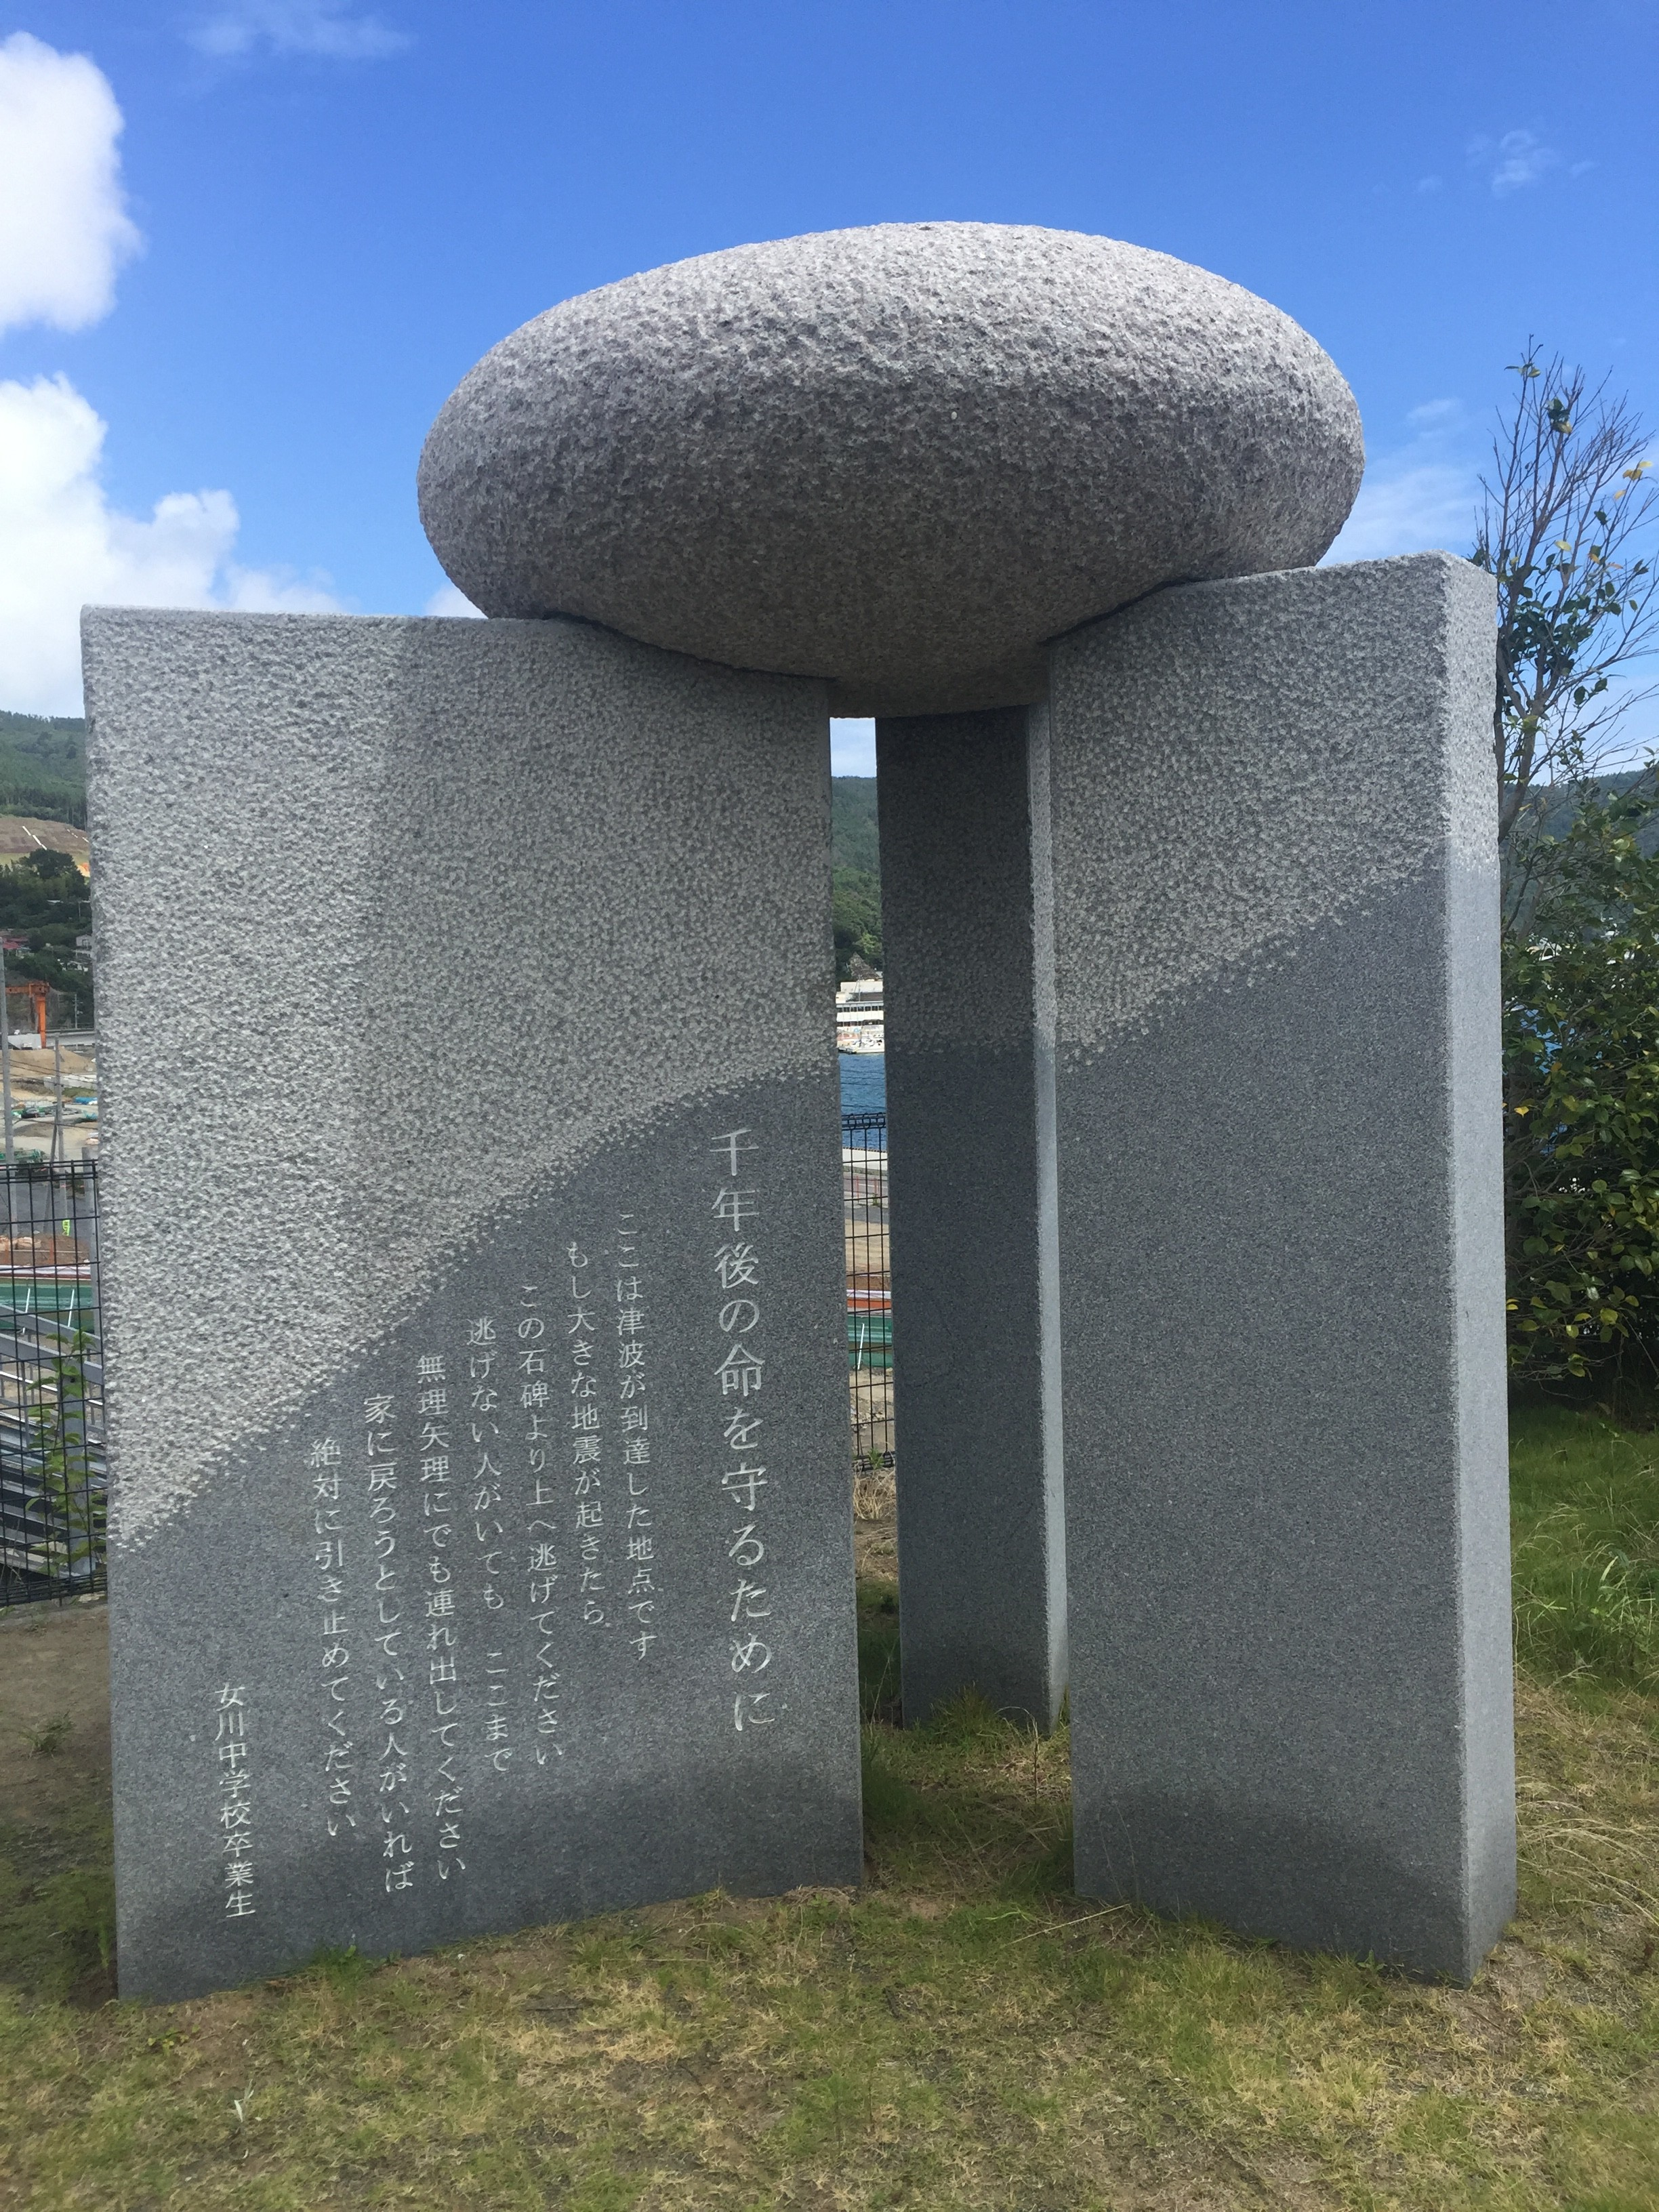 The Great East Japan Mourning Stone